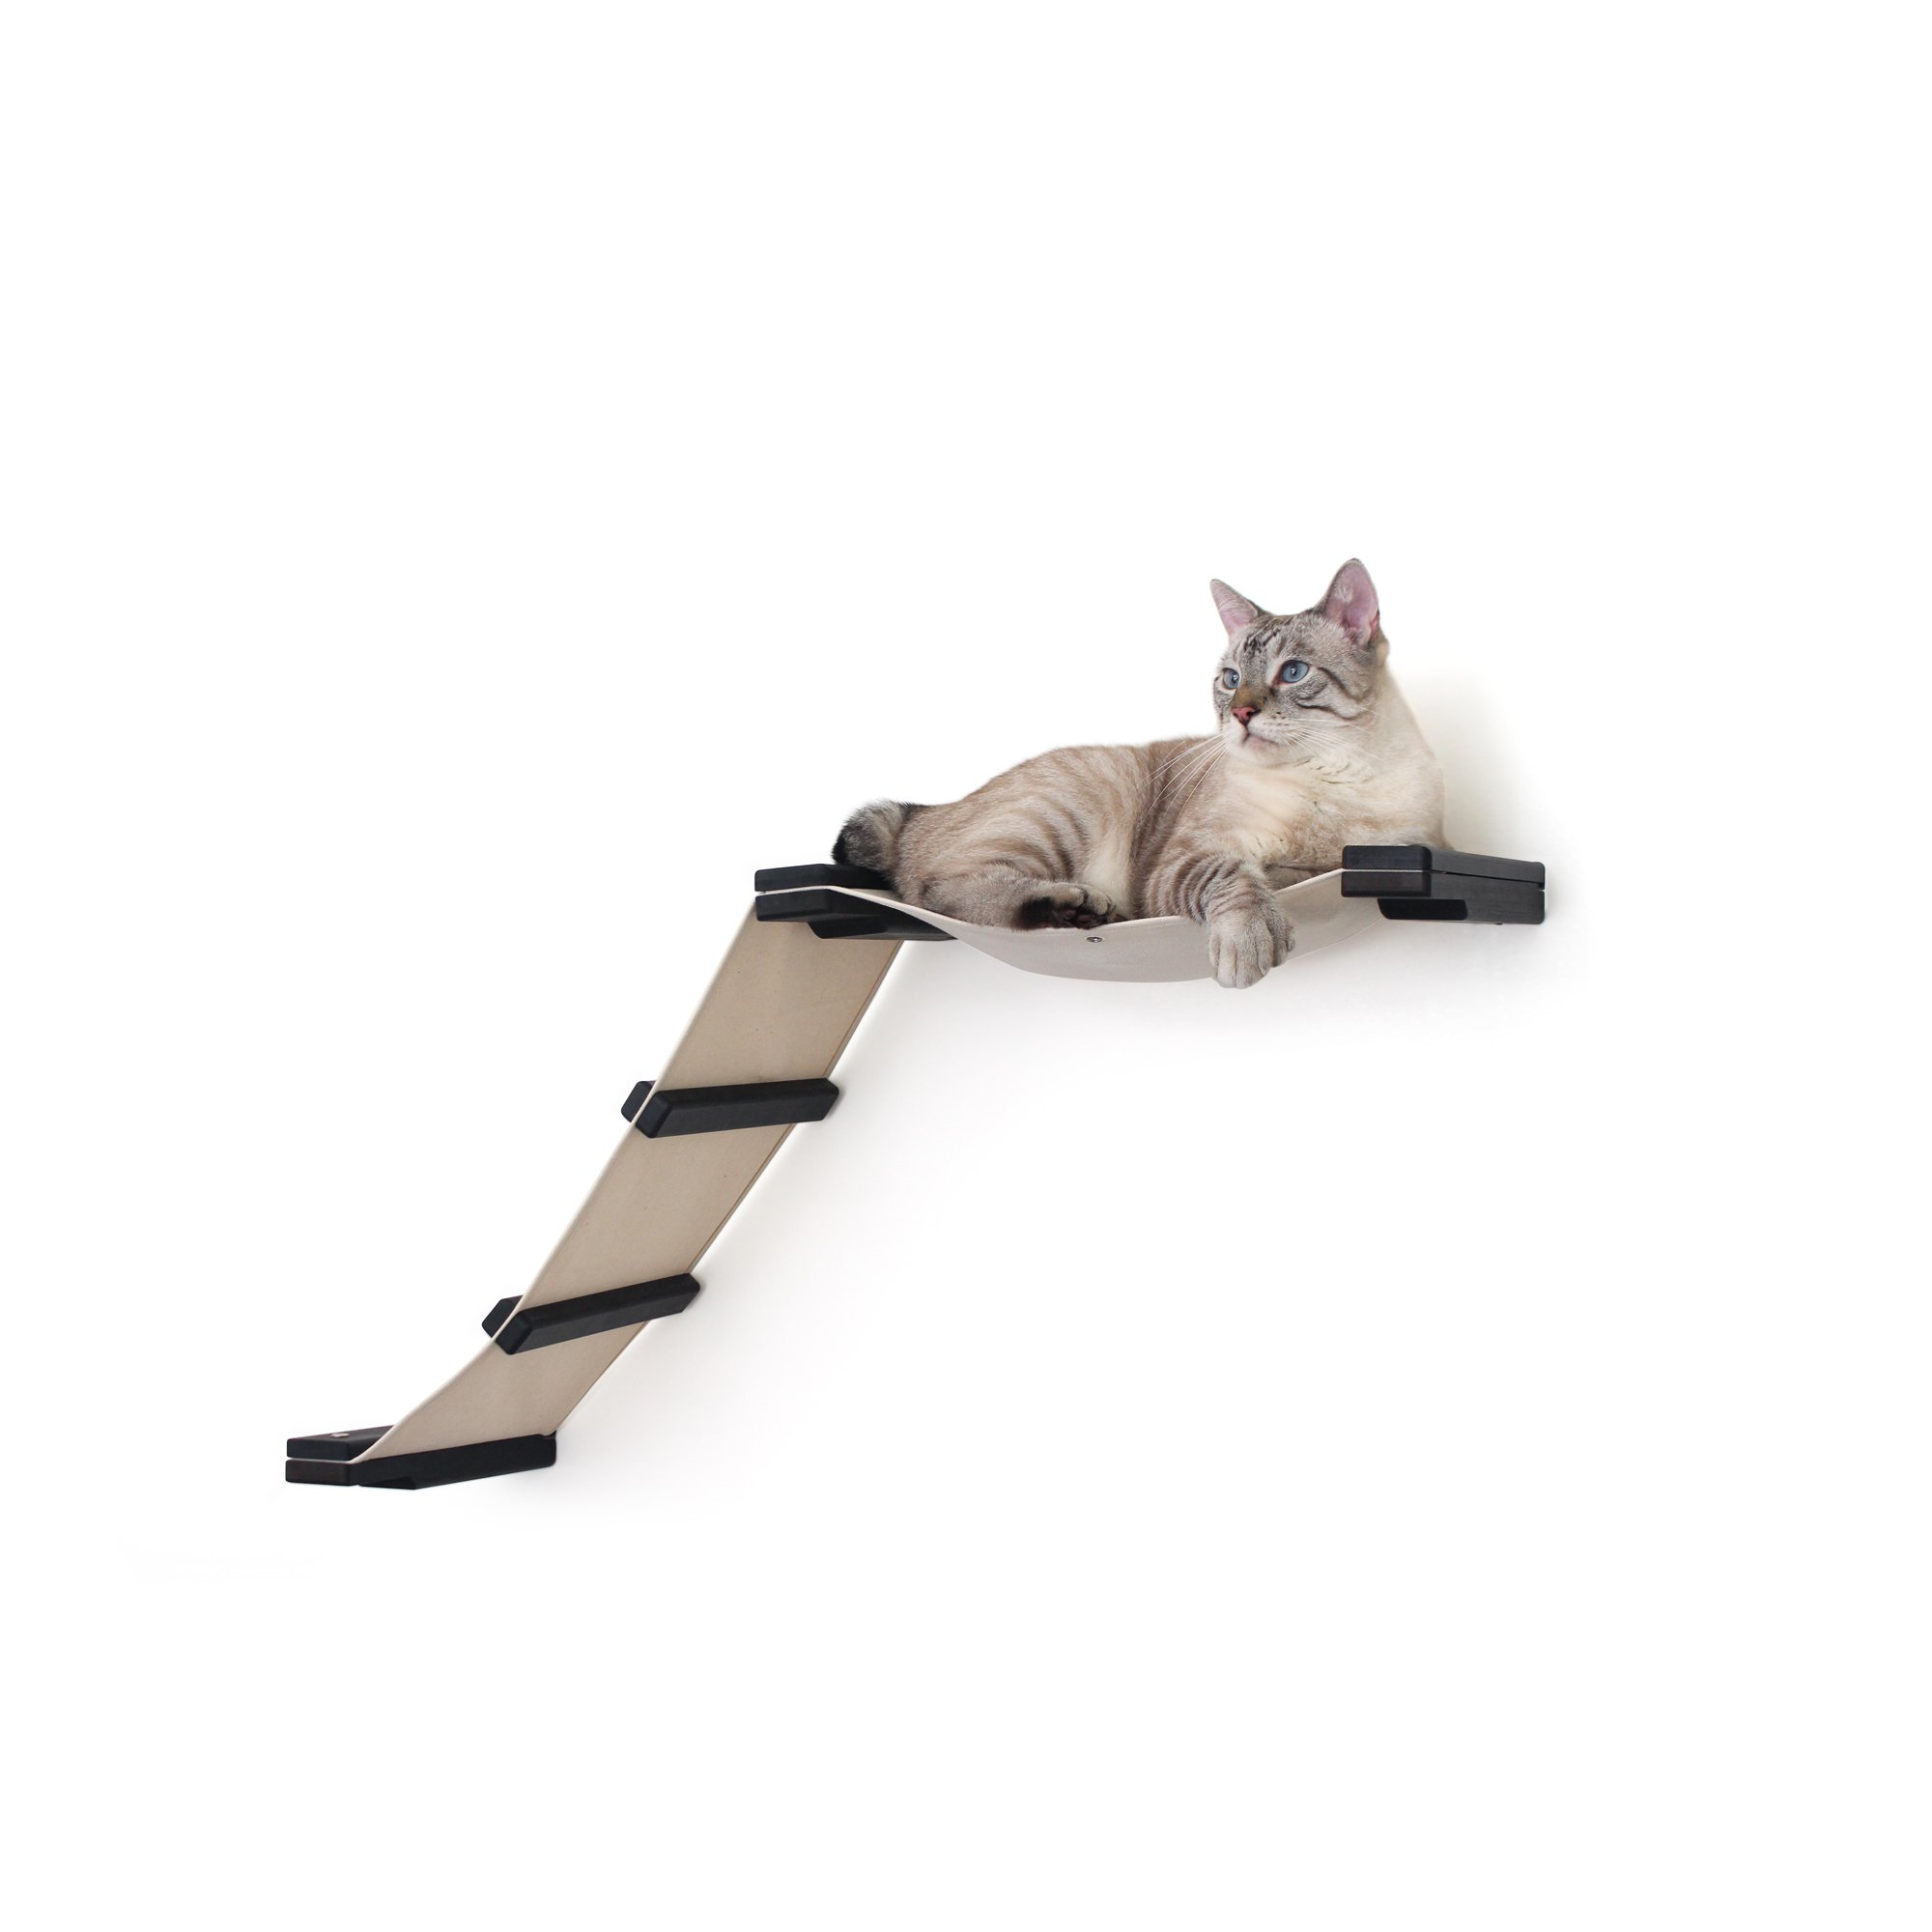 Catastrophicreations The Cat Mod Lift Hammocks For Cats In English Chestnut, 34 In W X 20 In H, 8 Lb